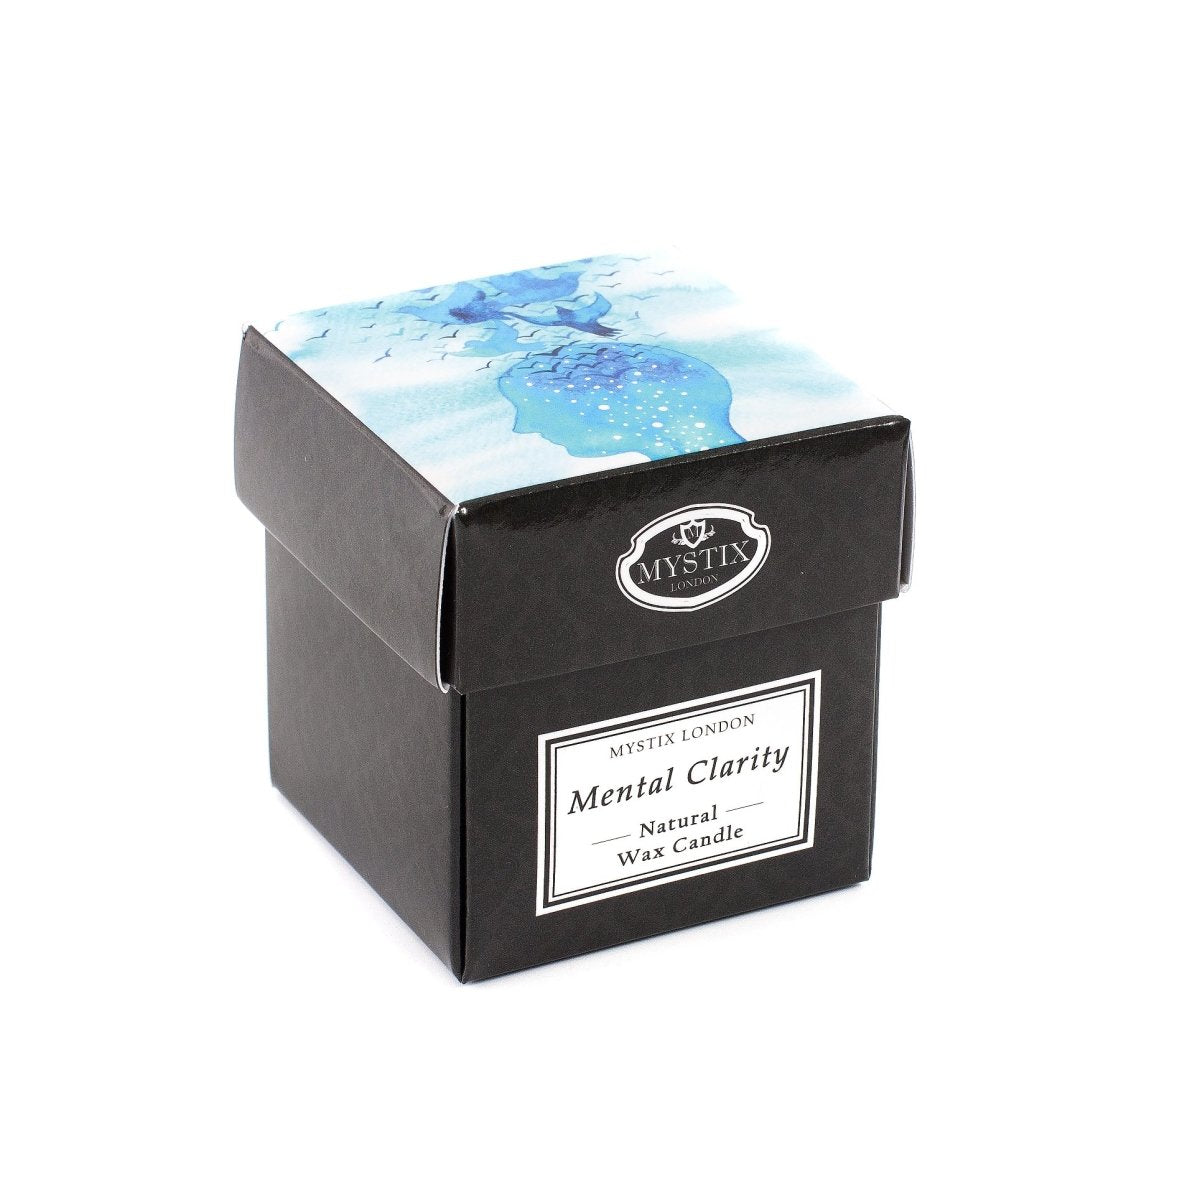 Mental Clarity Scented Candle - Mystic Moments UK